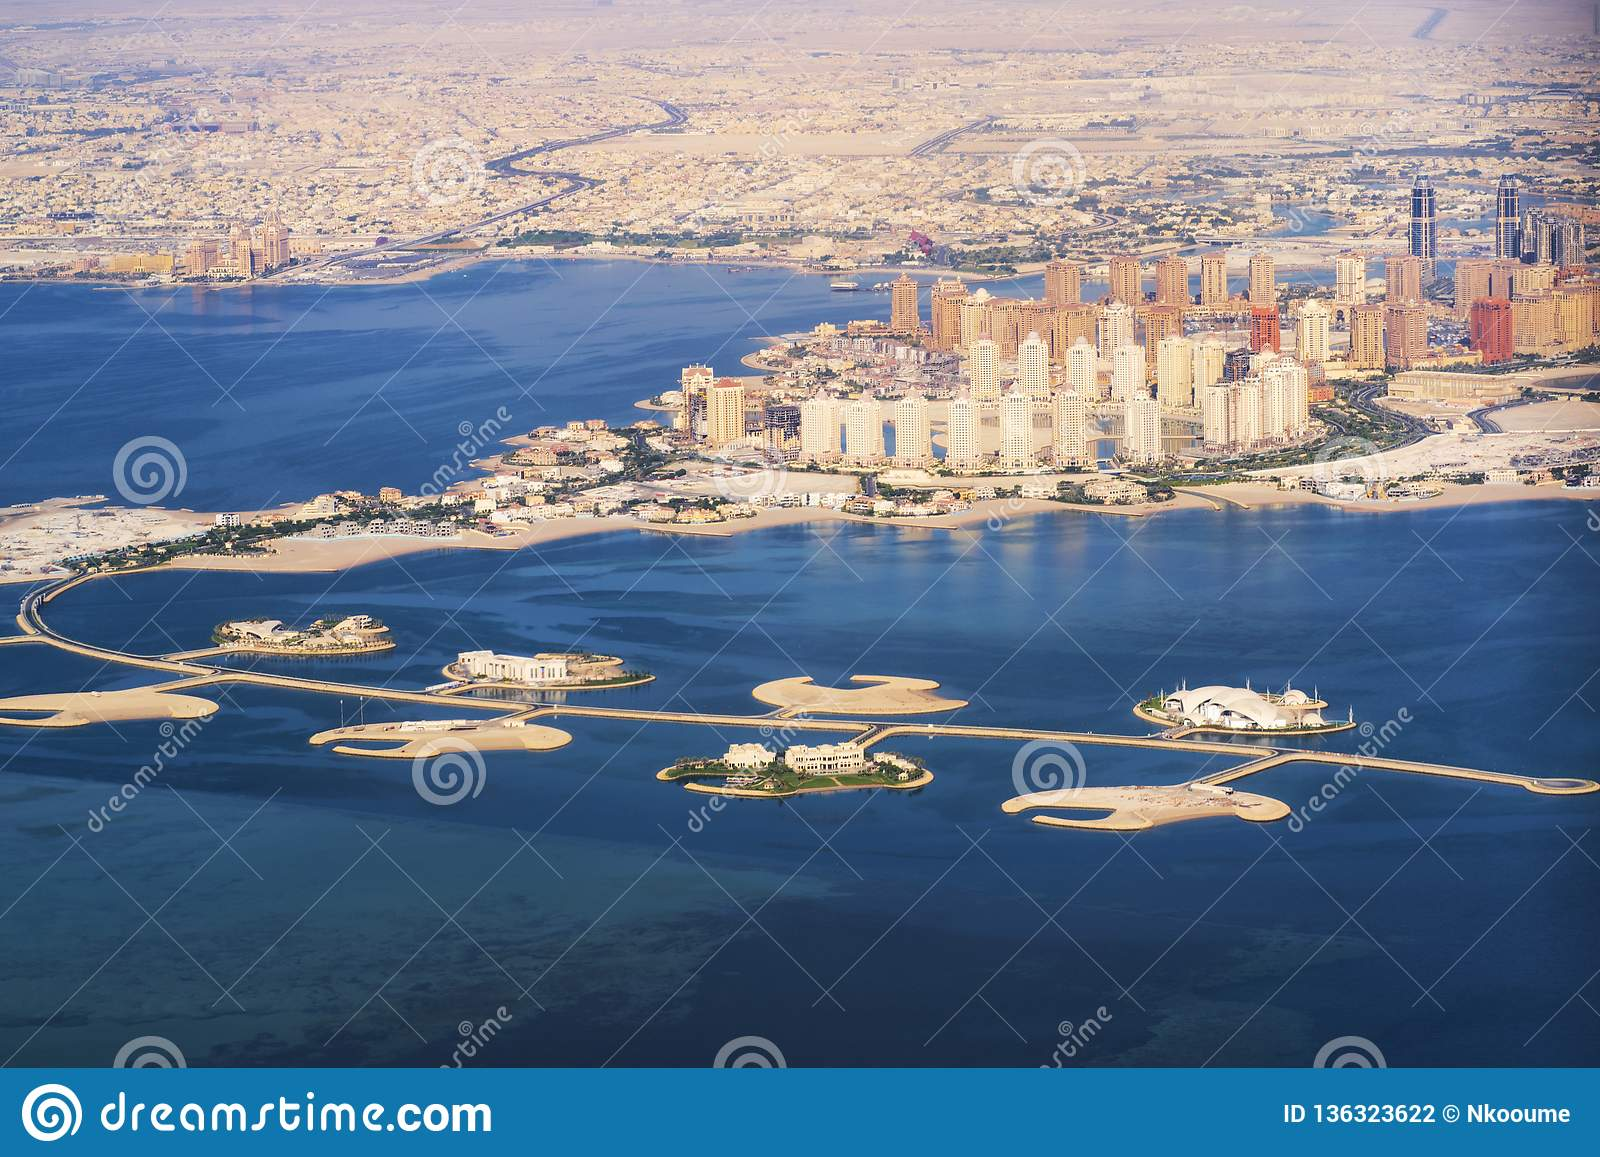 Aerial view of the Pearl-Qatar island in Doha . Qatar, the Persian Gulf. Persian Gulf